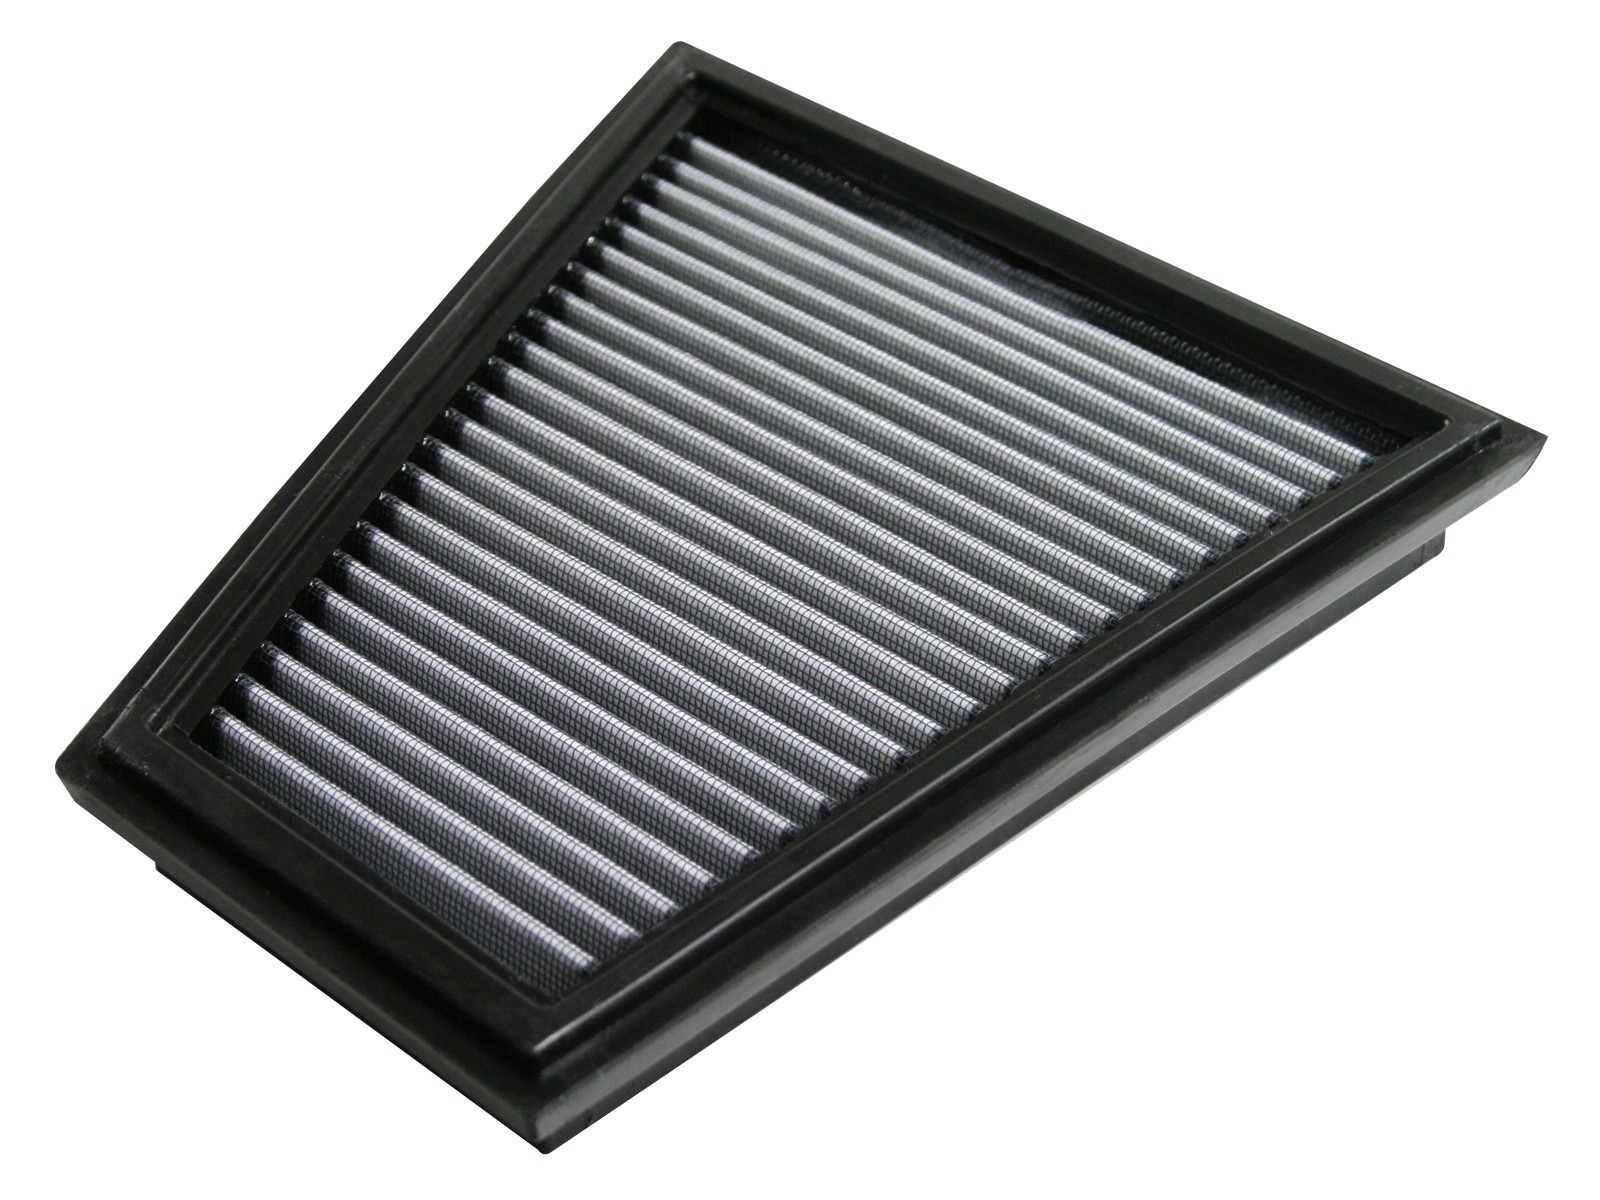 aFe POWER 31-10227 Magnum FLOW Pro DRY S Air Filter